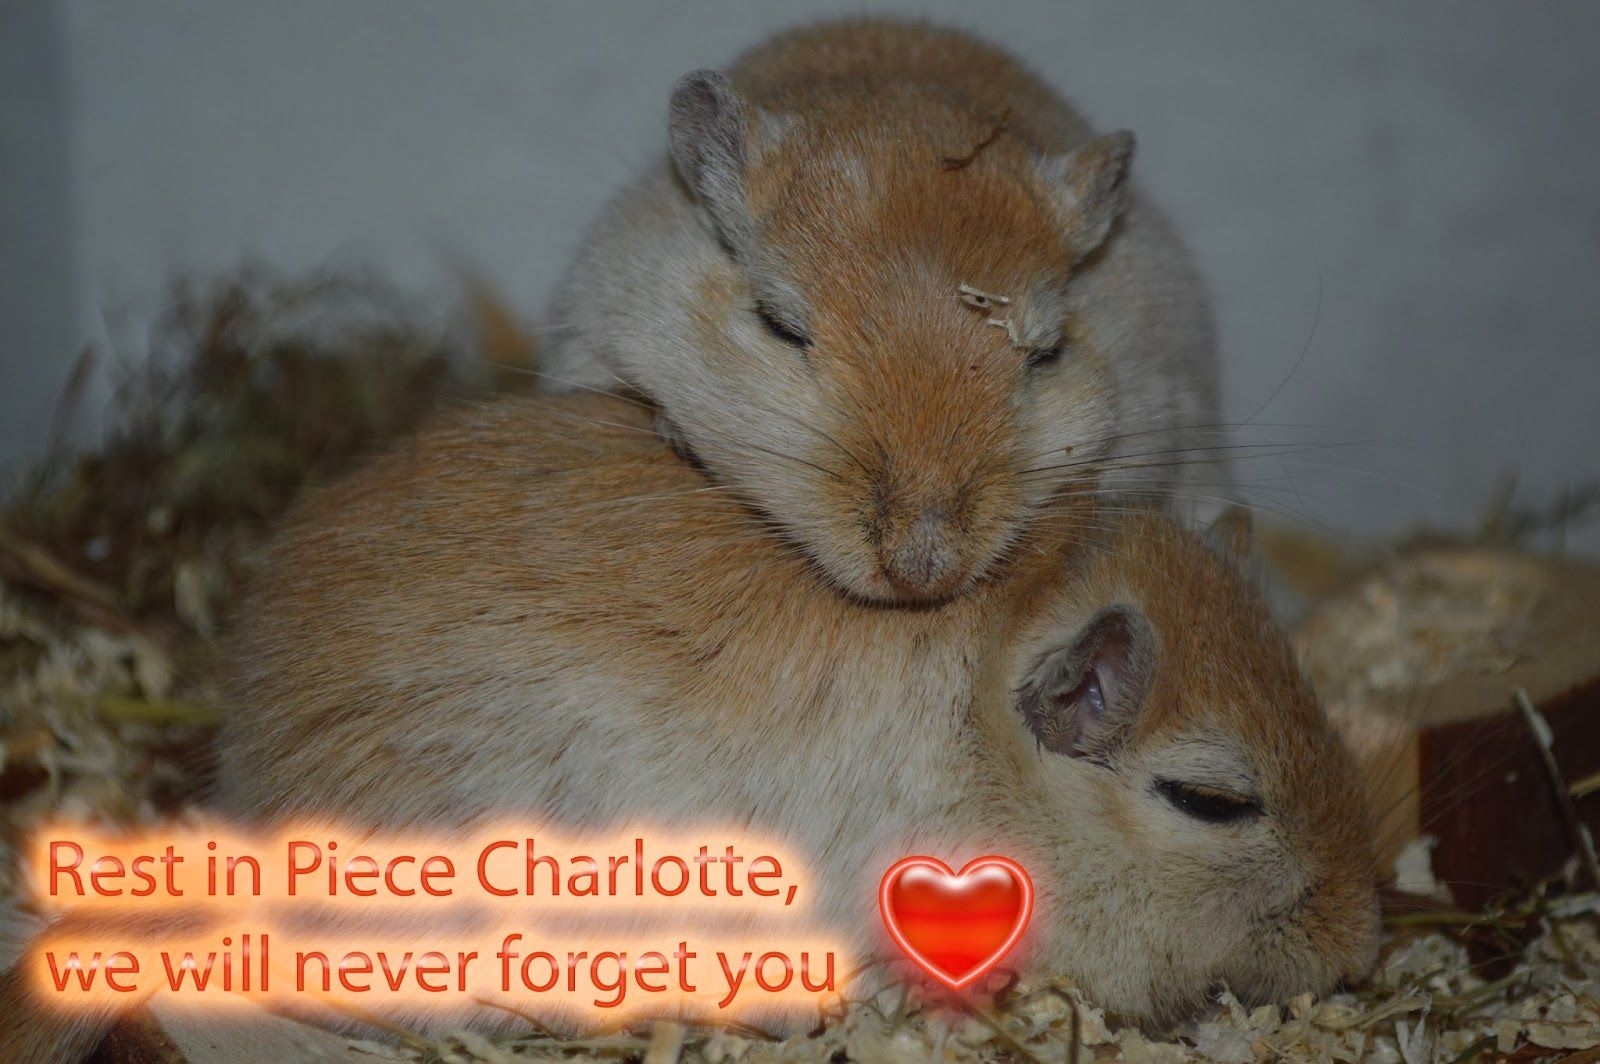 Today i am off cause my little gerbil Charlotte died last night and i had so much to do... i will answer comments and likes tomorrow, when i am Online again, today was to much for my pets, my husband and me.   http://kaninchenfanlucky-meinkaninchenloch.blogspot.de/2014/02/rest-in-piece-charlotte-we-will-never.html